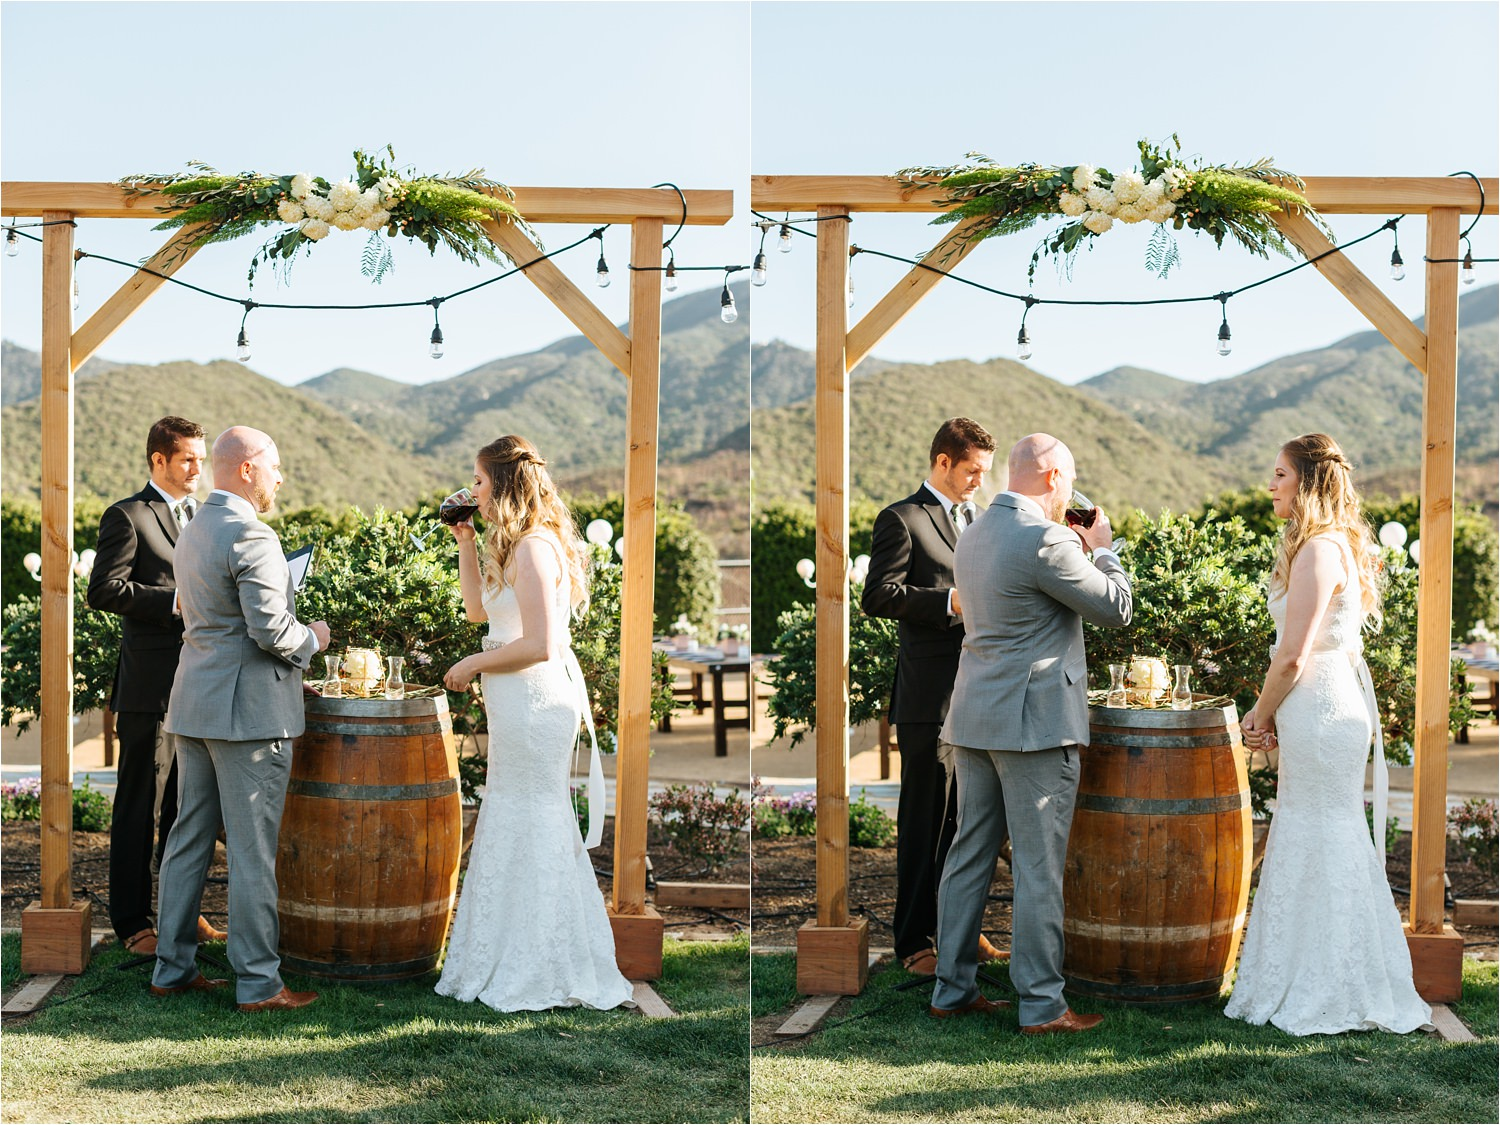 Bride and Groom share wine during their wedding ceremony - https://brittneyhannonphotography.com